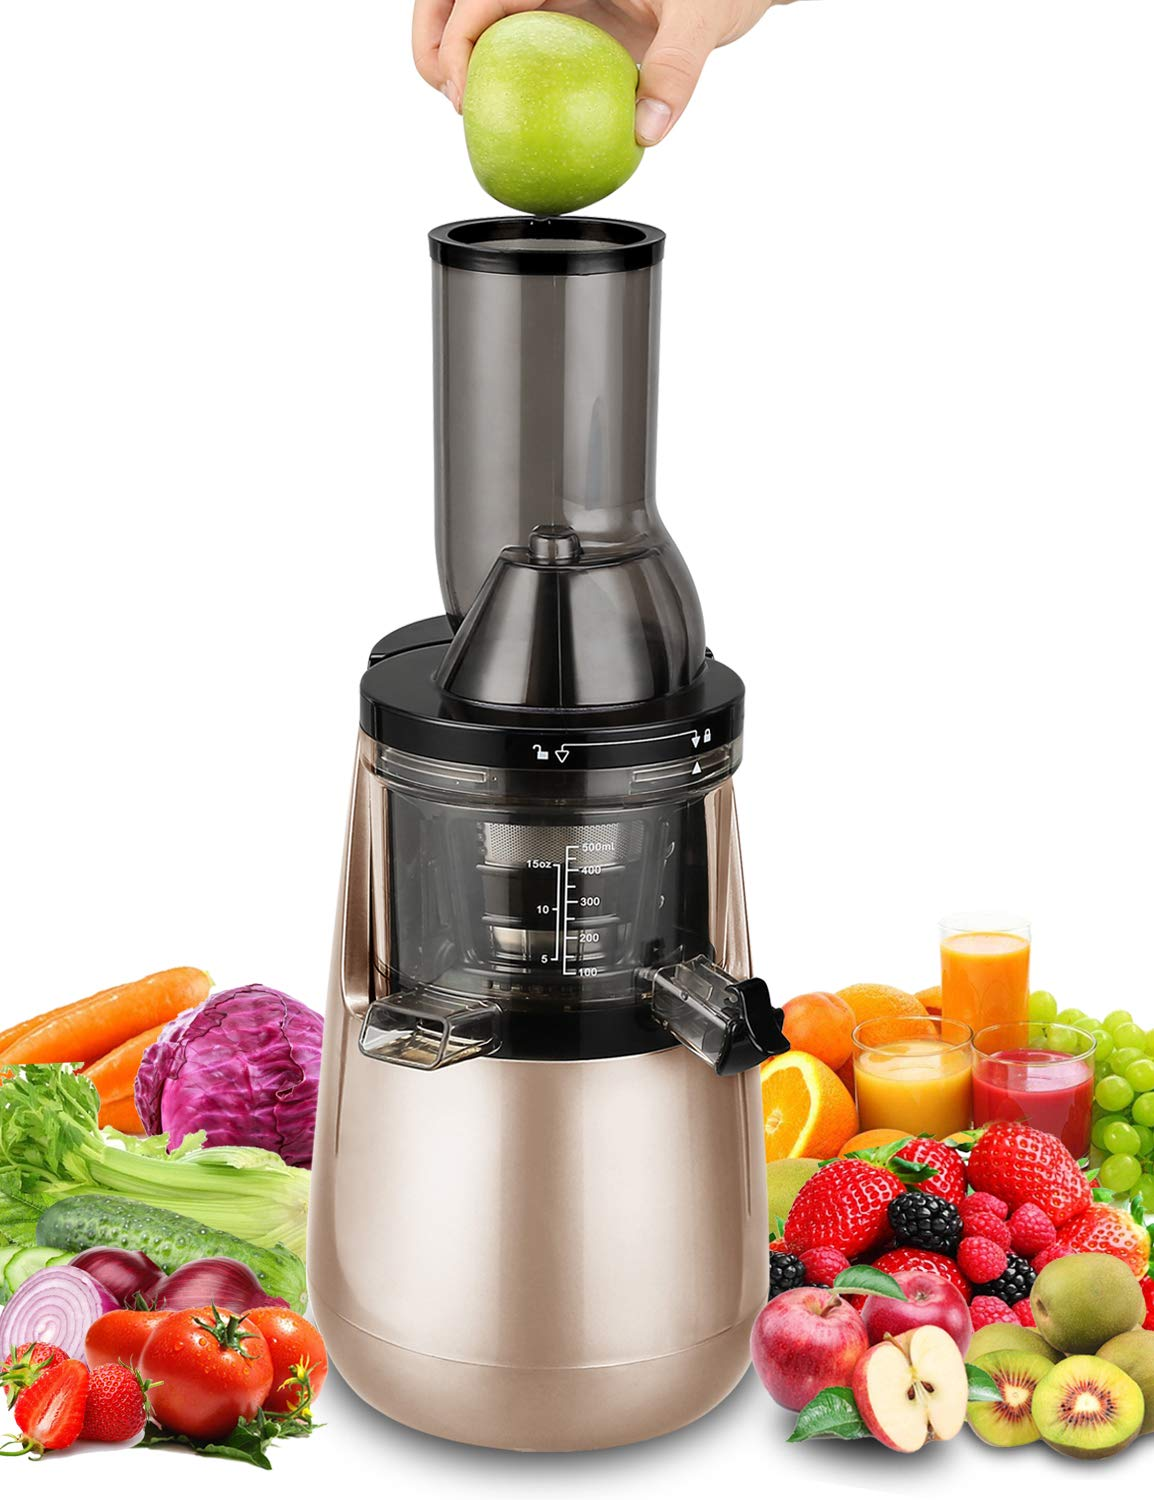 """Slow Masticating Juicer by Tiluxury, Low Speed With Wide Chute Anti-Oxidation,Whole Fruit and Vegetable Vertical Cold Press Juicers(250W AC Motor,40 RPMs,3"""" Big Mouth),BPA Free (Champagne Gold)"""